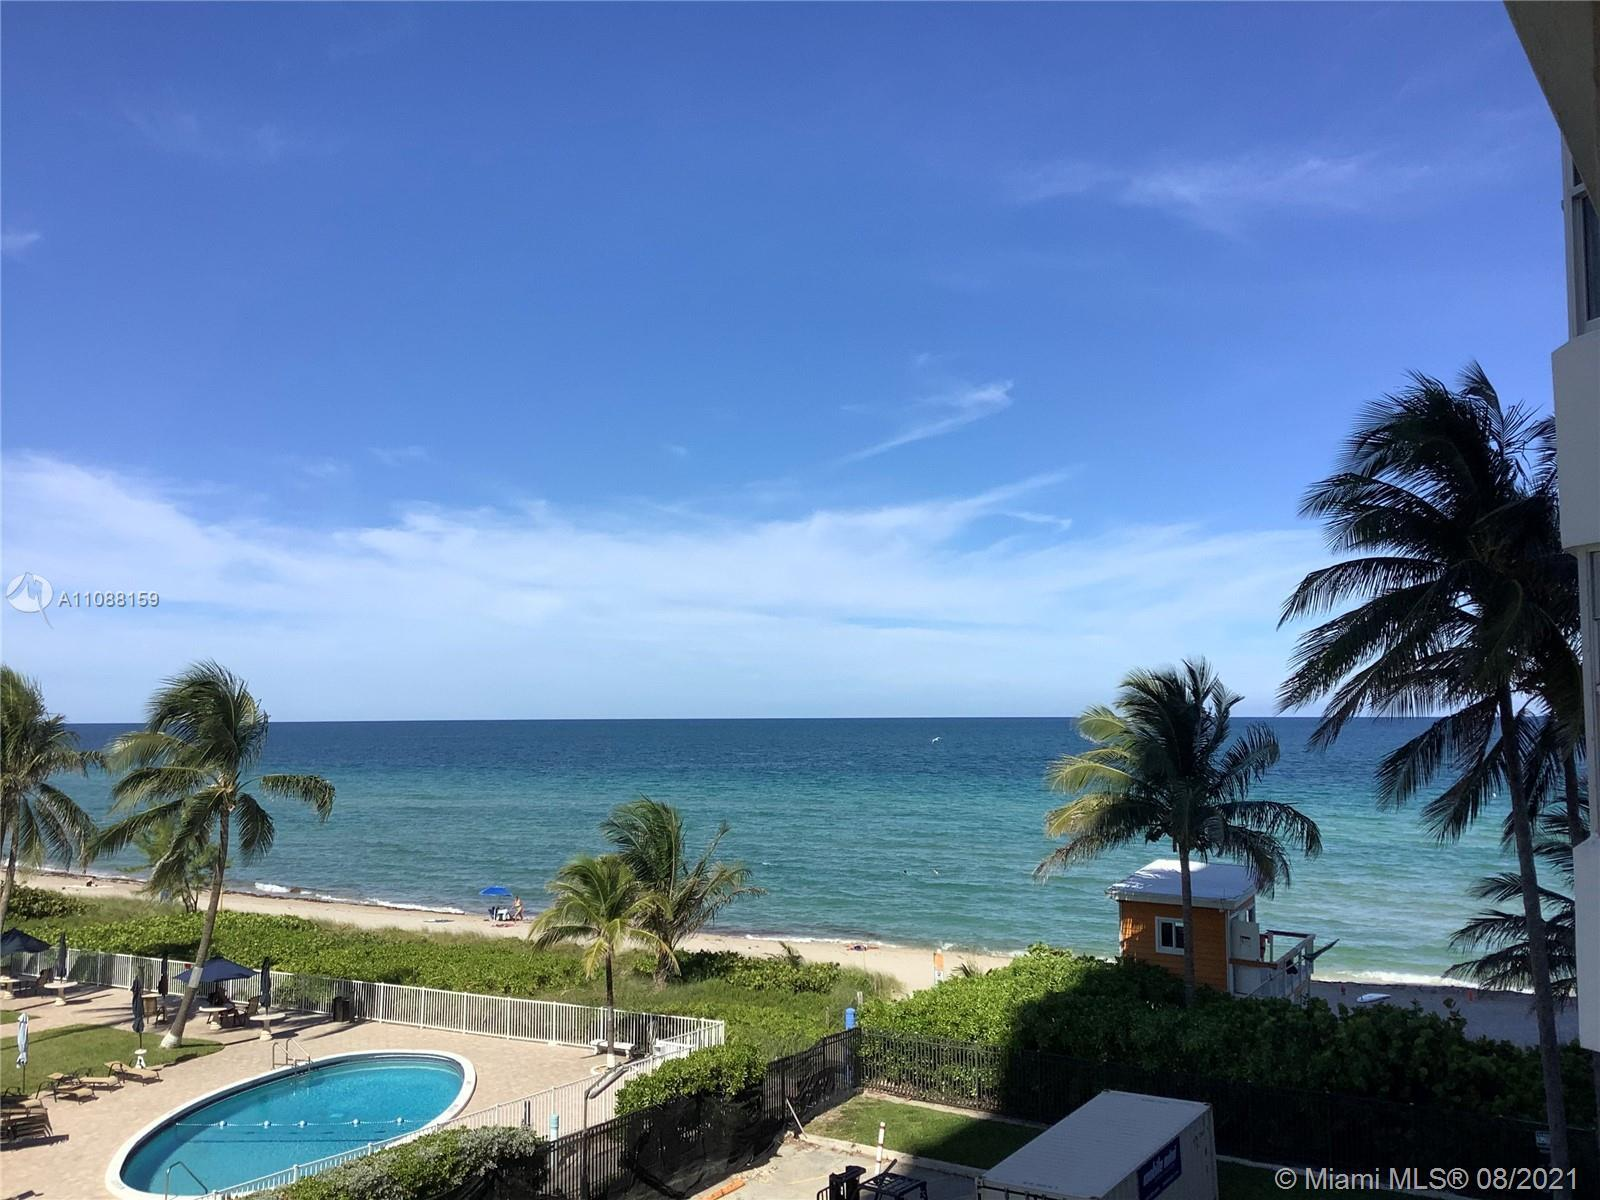 1 Br 1.5 Bath on the Ocean in Ocean North, the most desirable and closest to the beach. Beautiful Oc